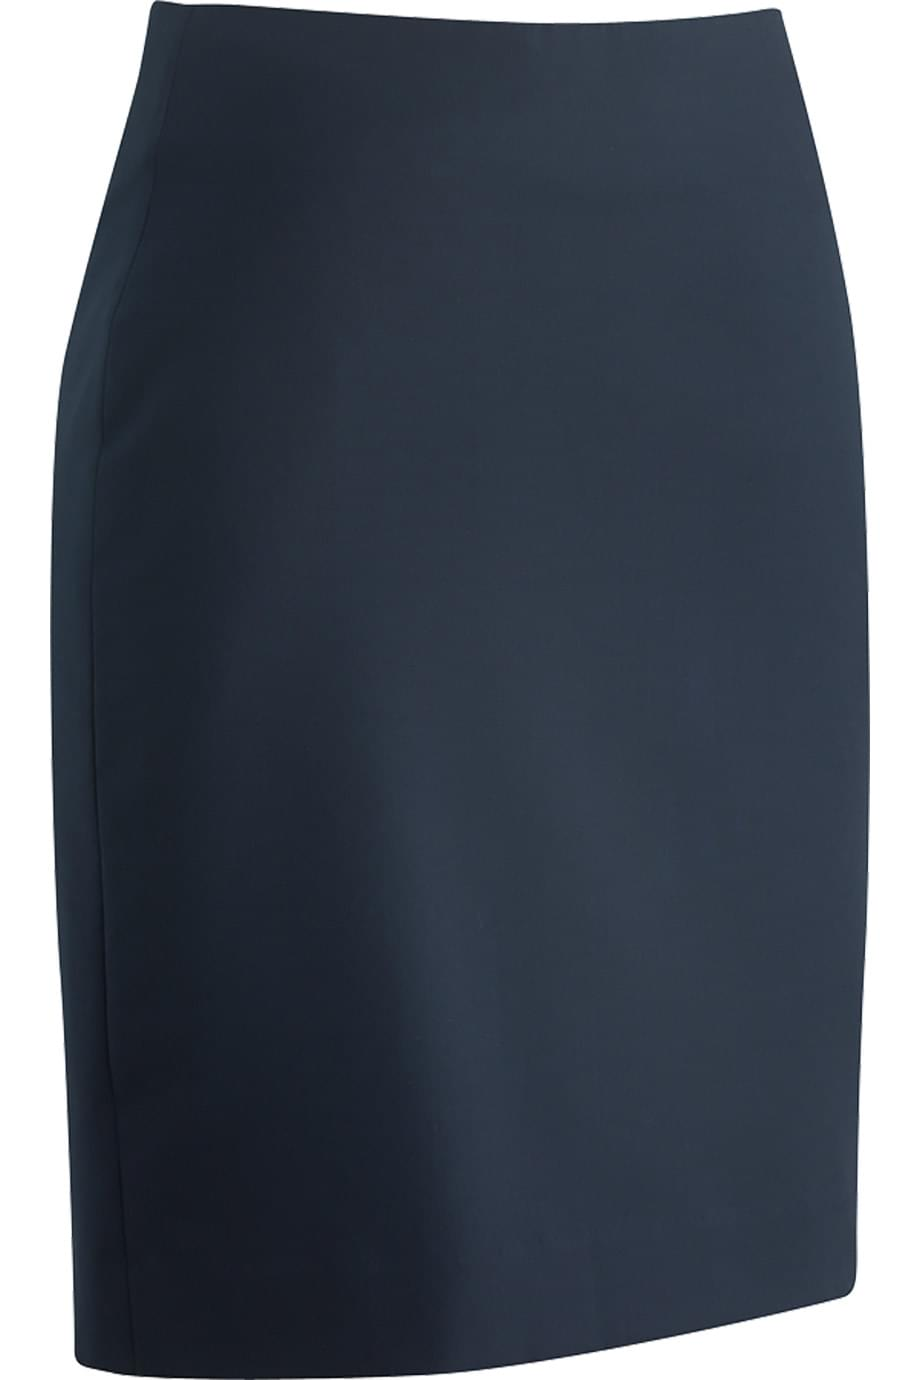 LADIES' STRAIGHT LINE SKIRT WITH RUSSEL FABRIC